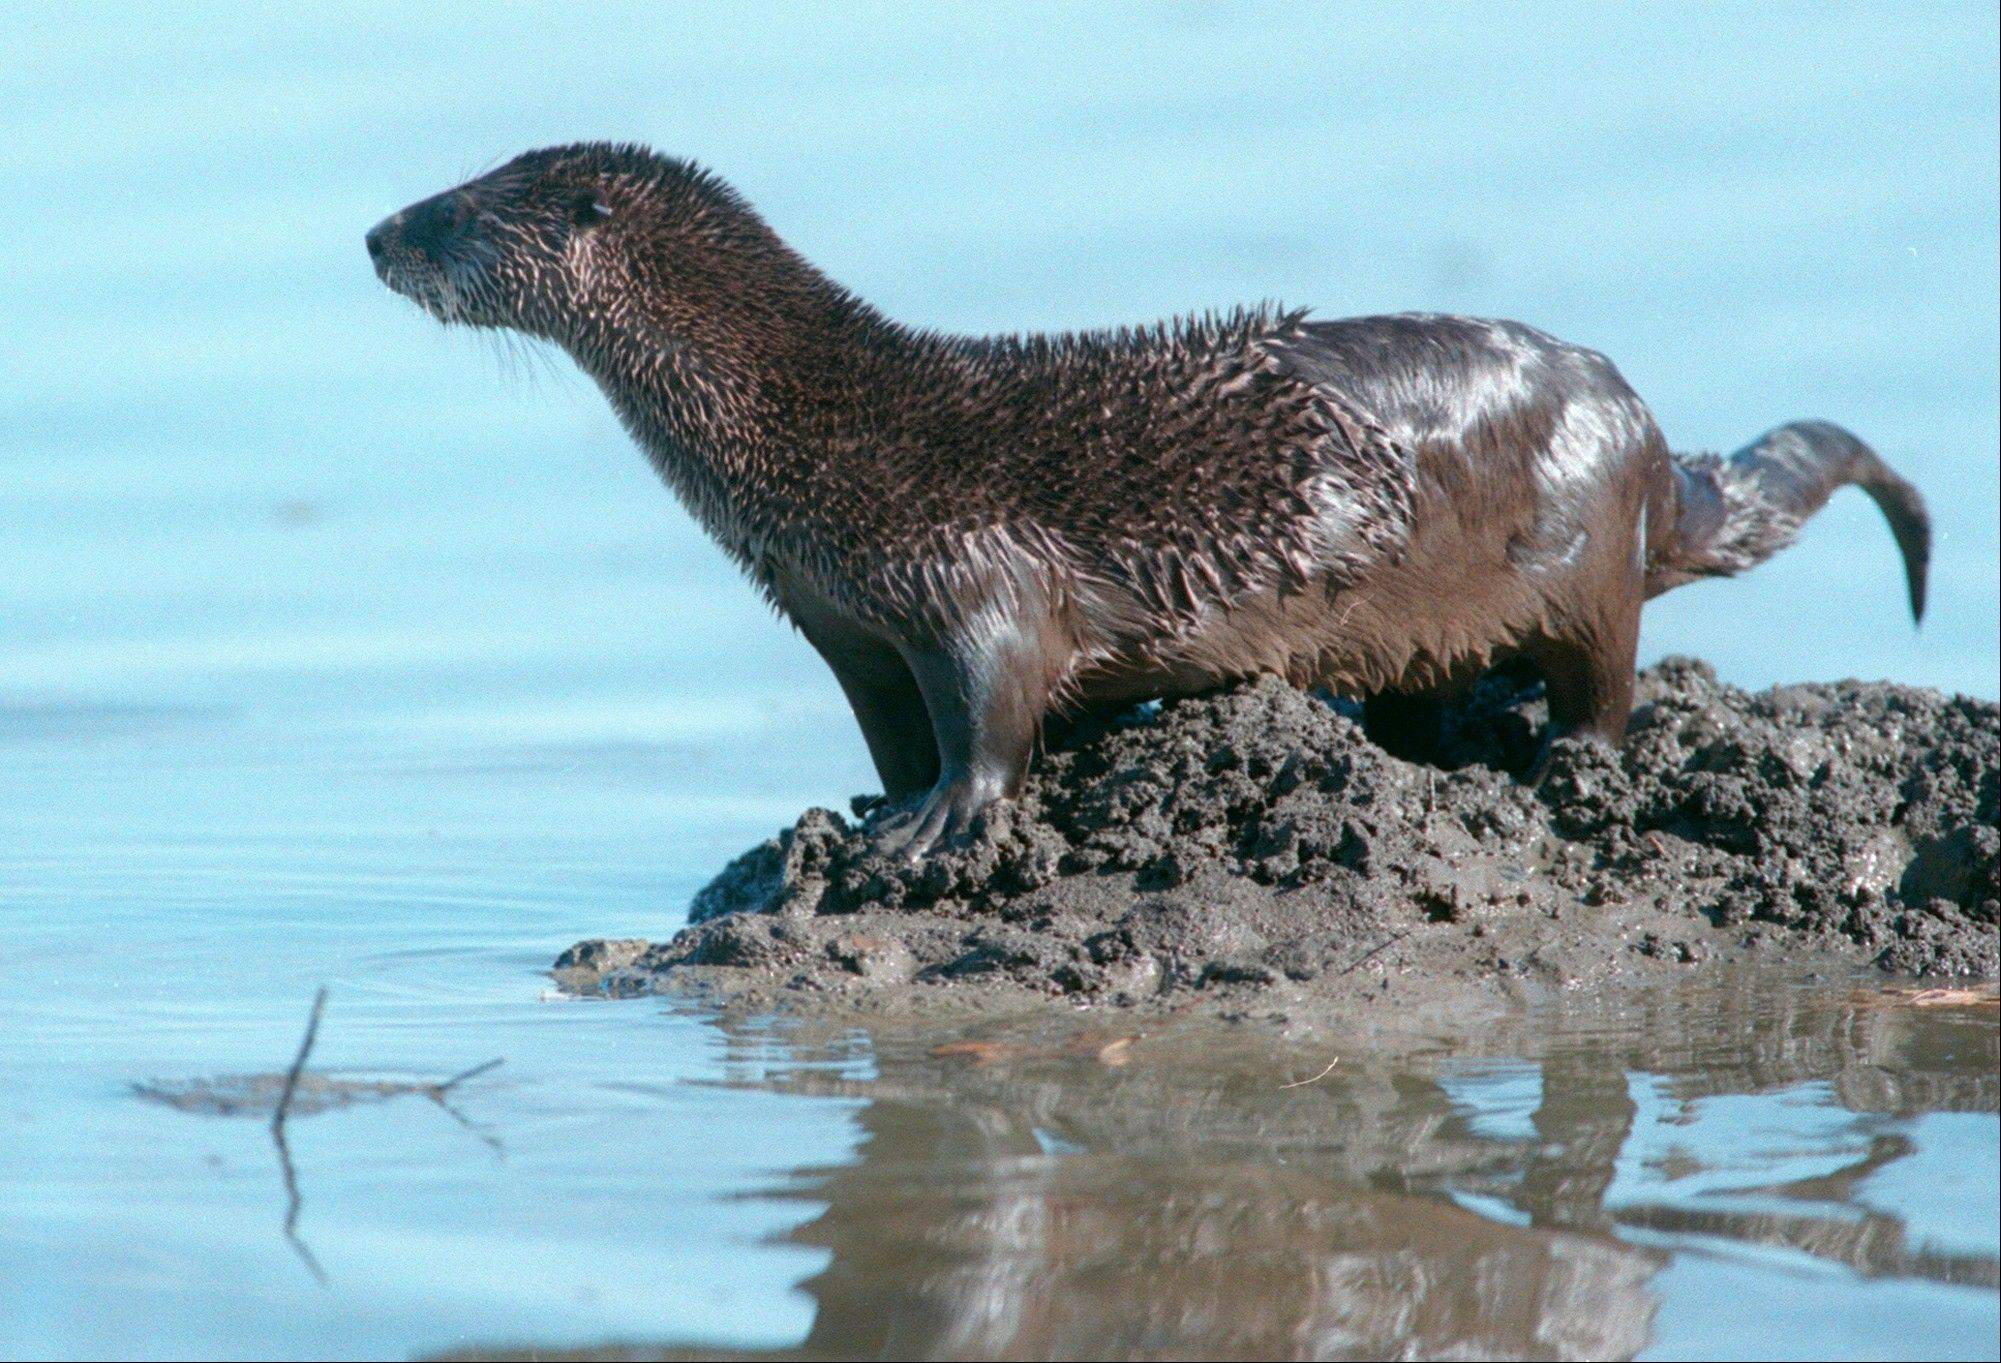 A river otter in Illinois.